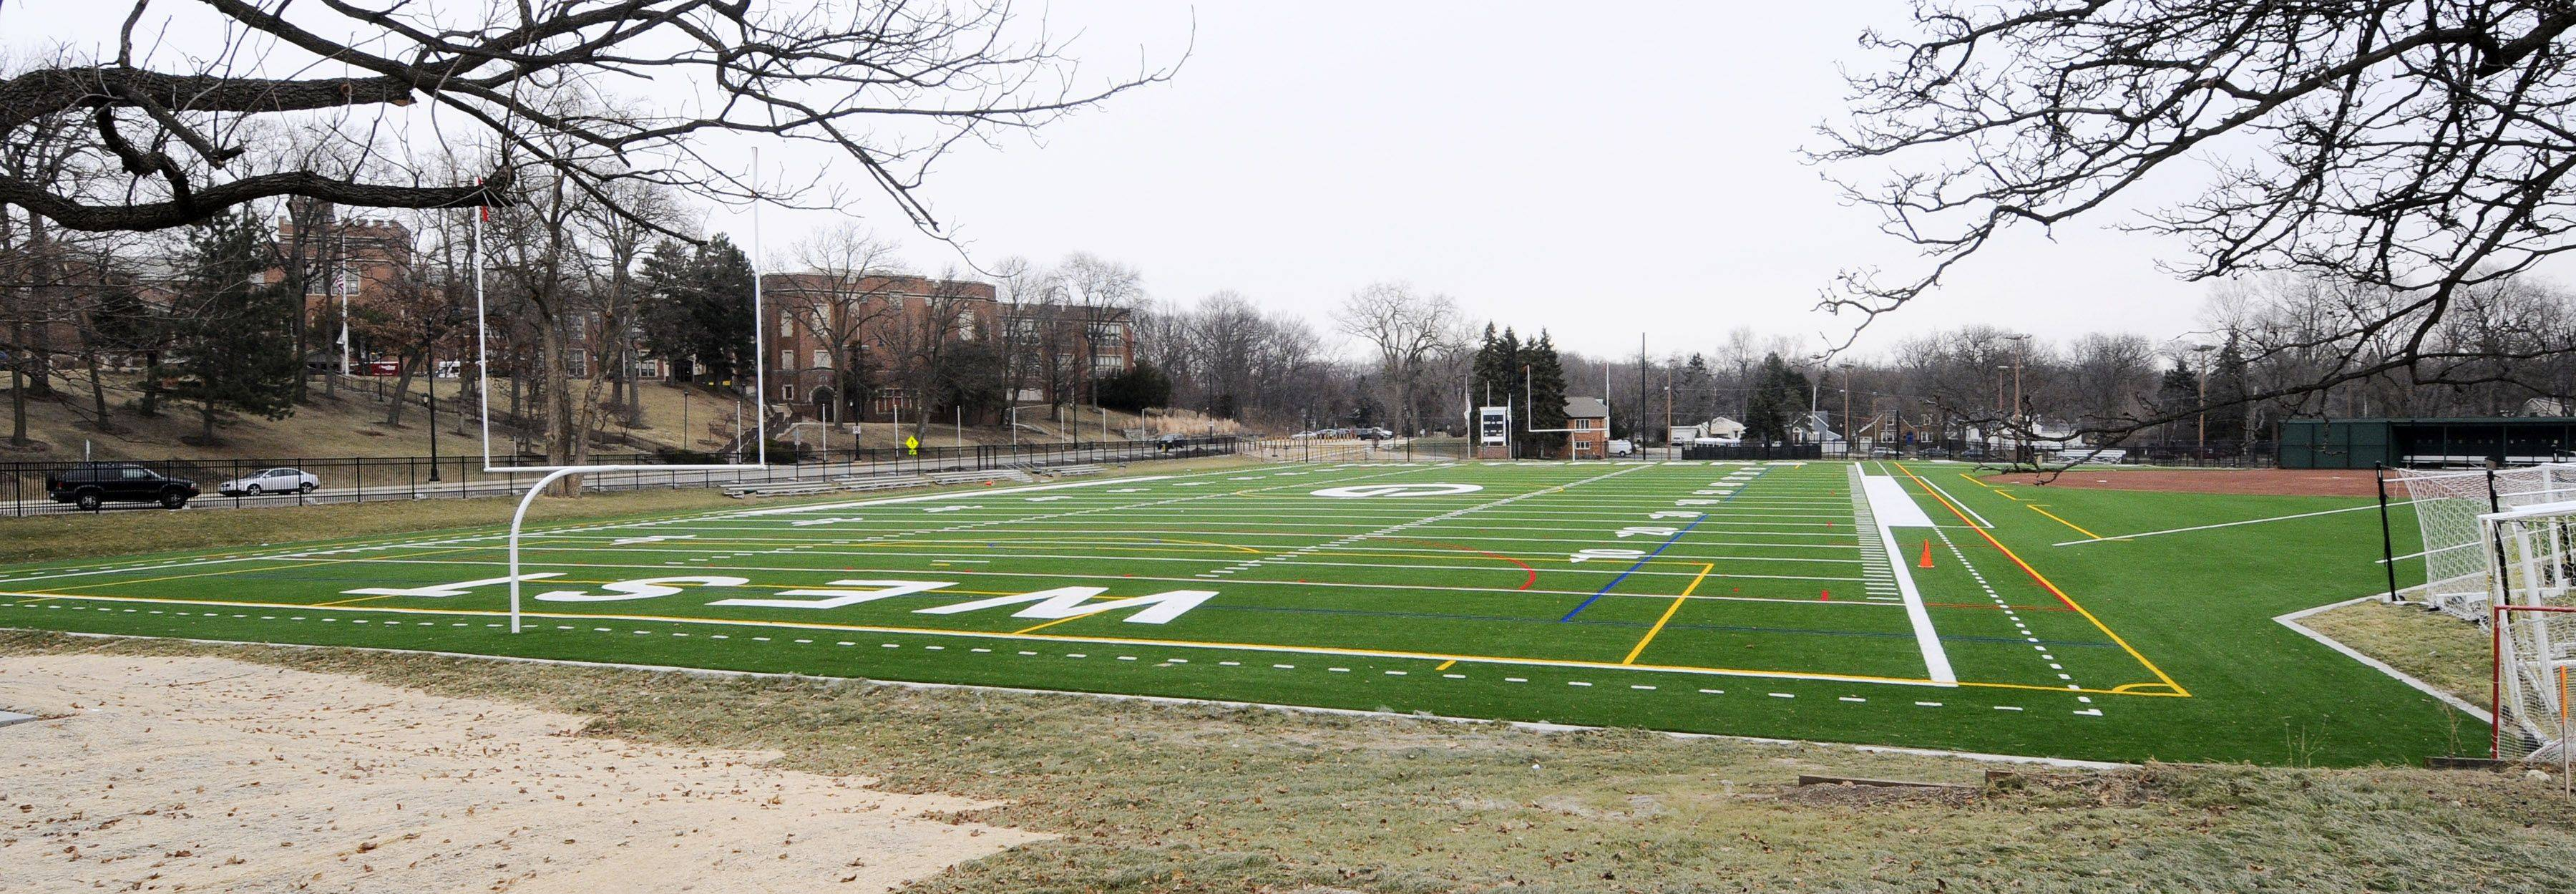 Glen Ellyn trustees rejected the pleas of residents who live near Memorial Field, across from Glenbard West High School in Glen Ellyn. They voted 6-0 to allow lights there.